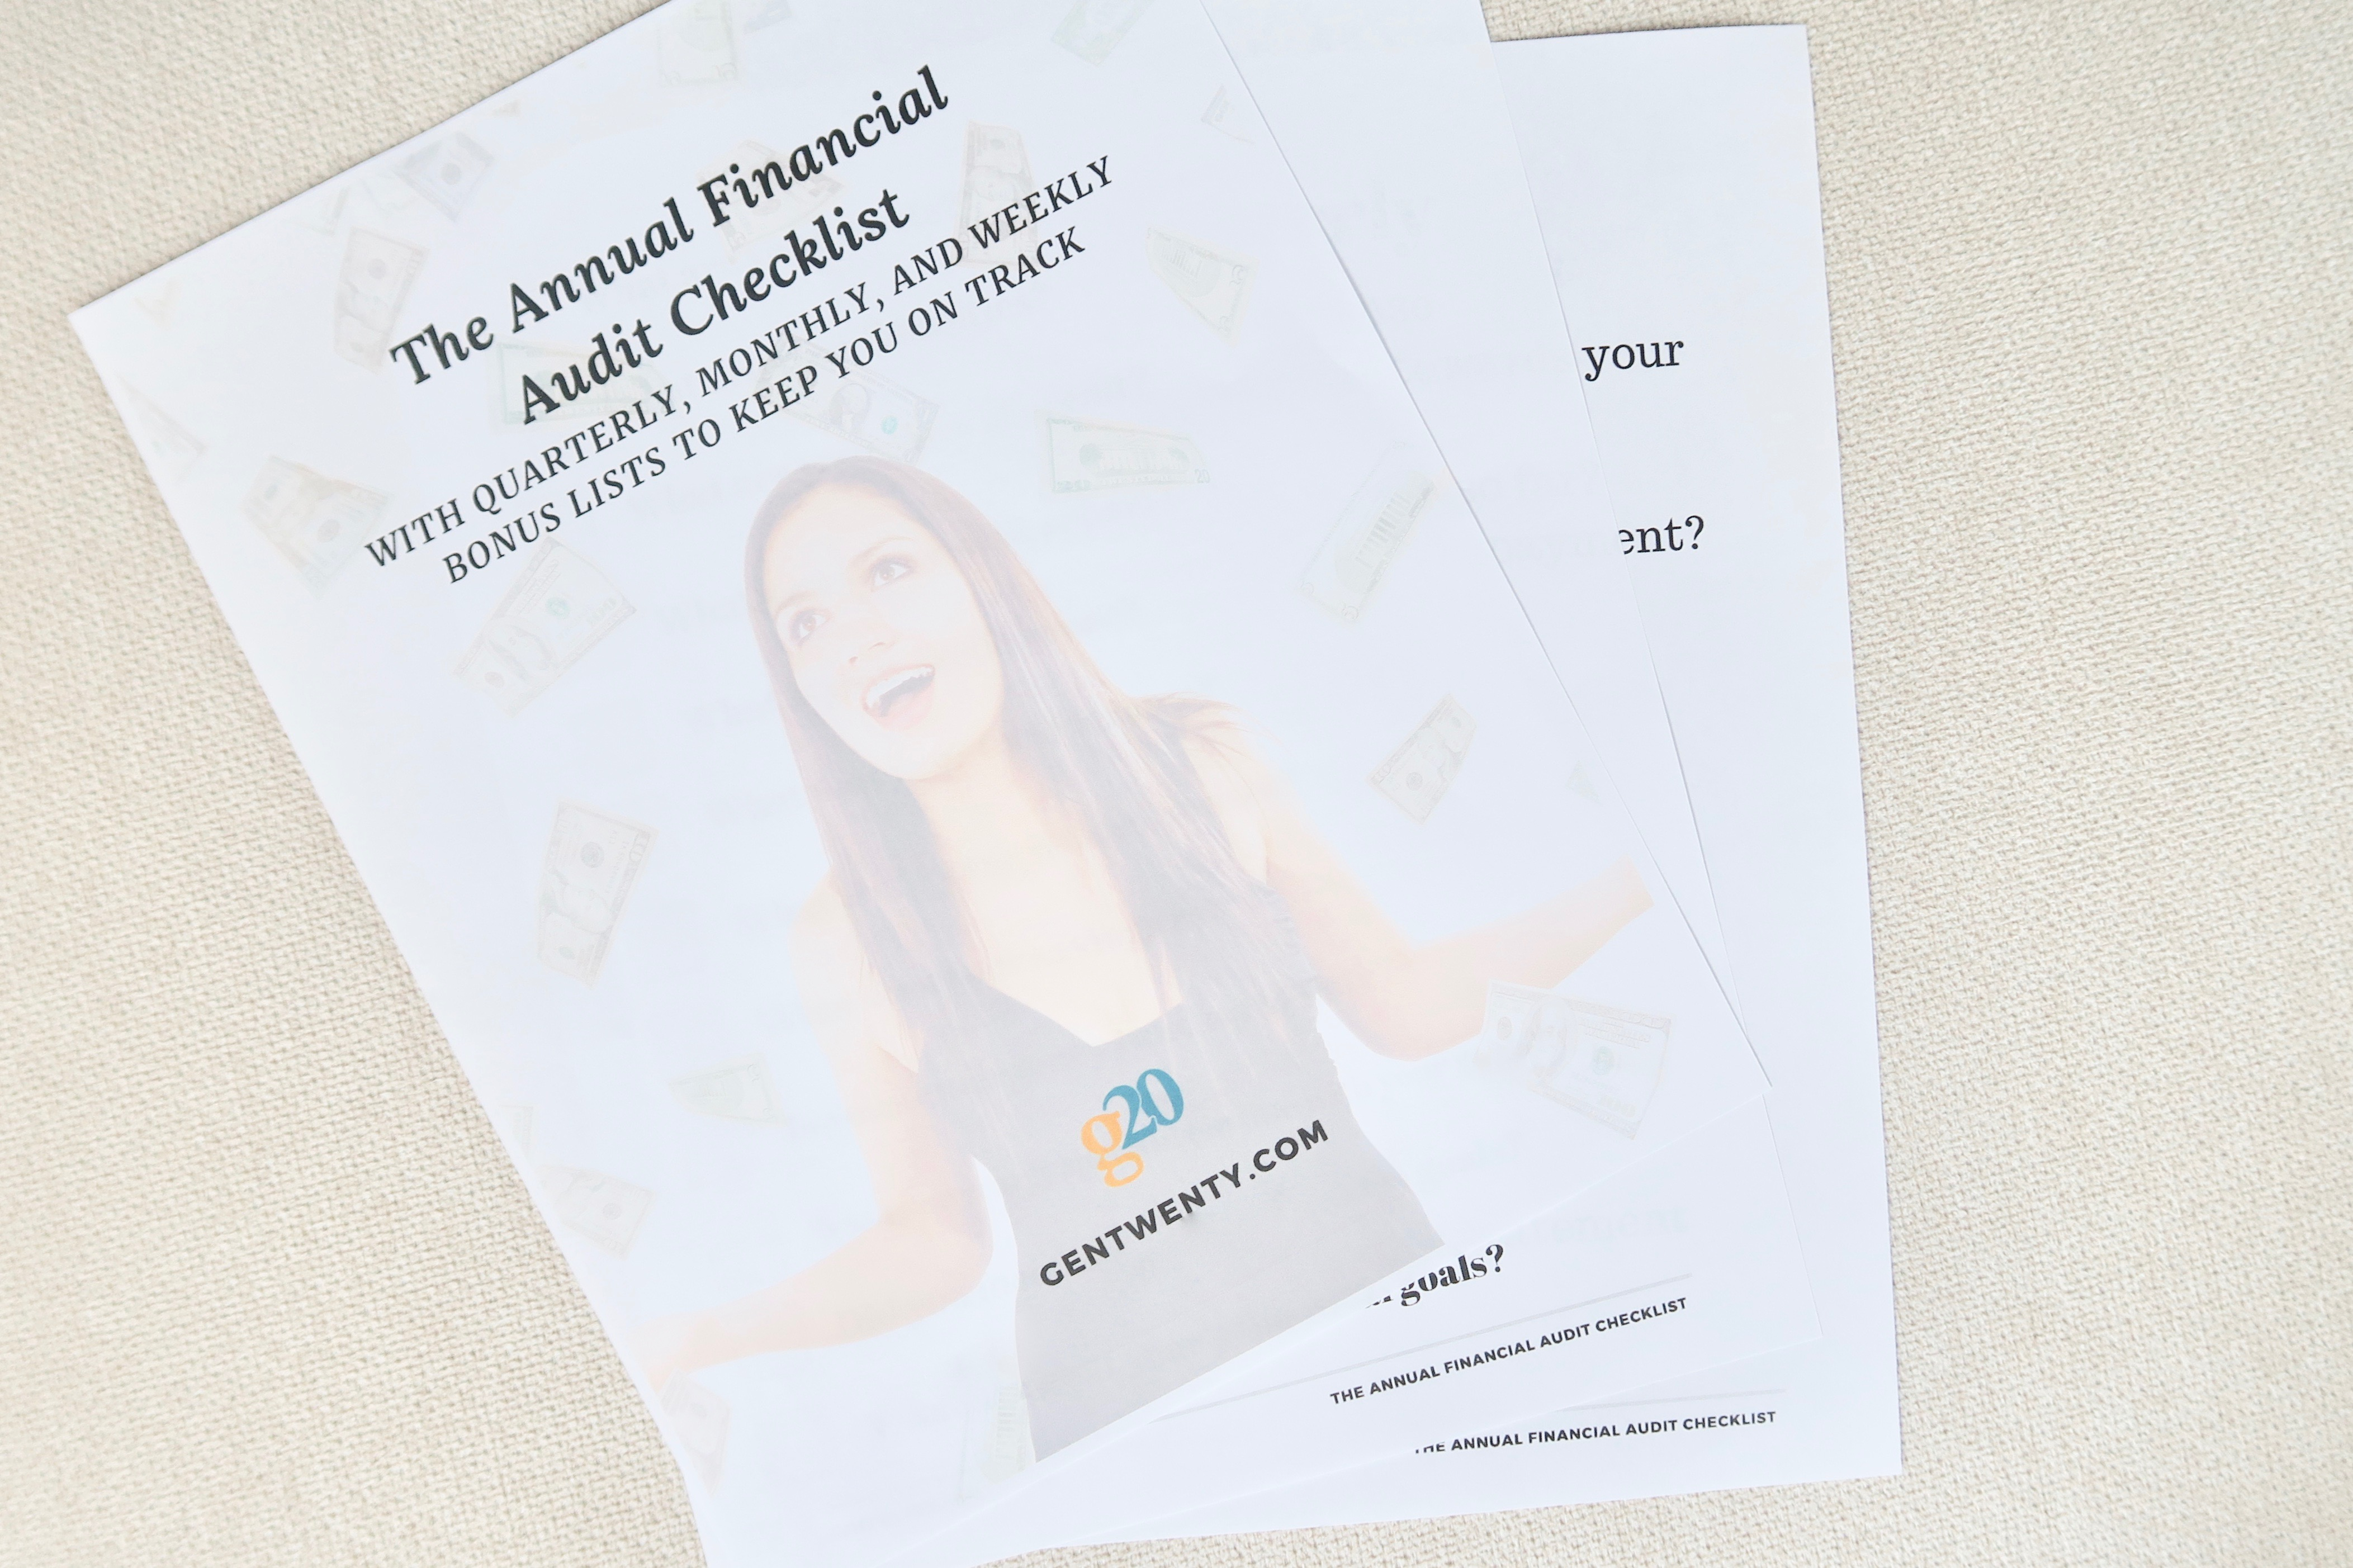 How To Do An Annual Financial Audit